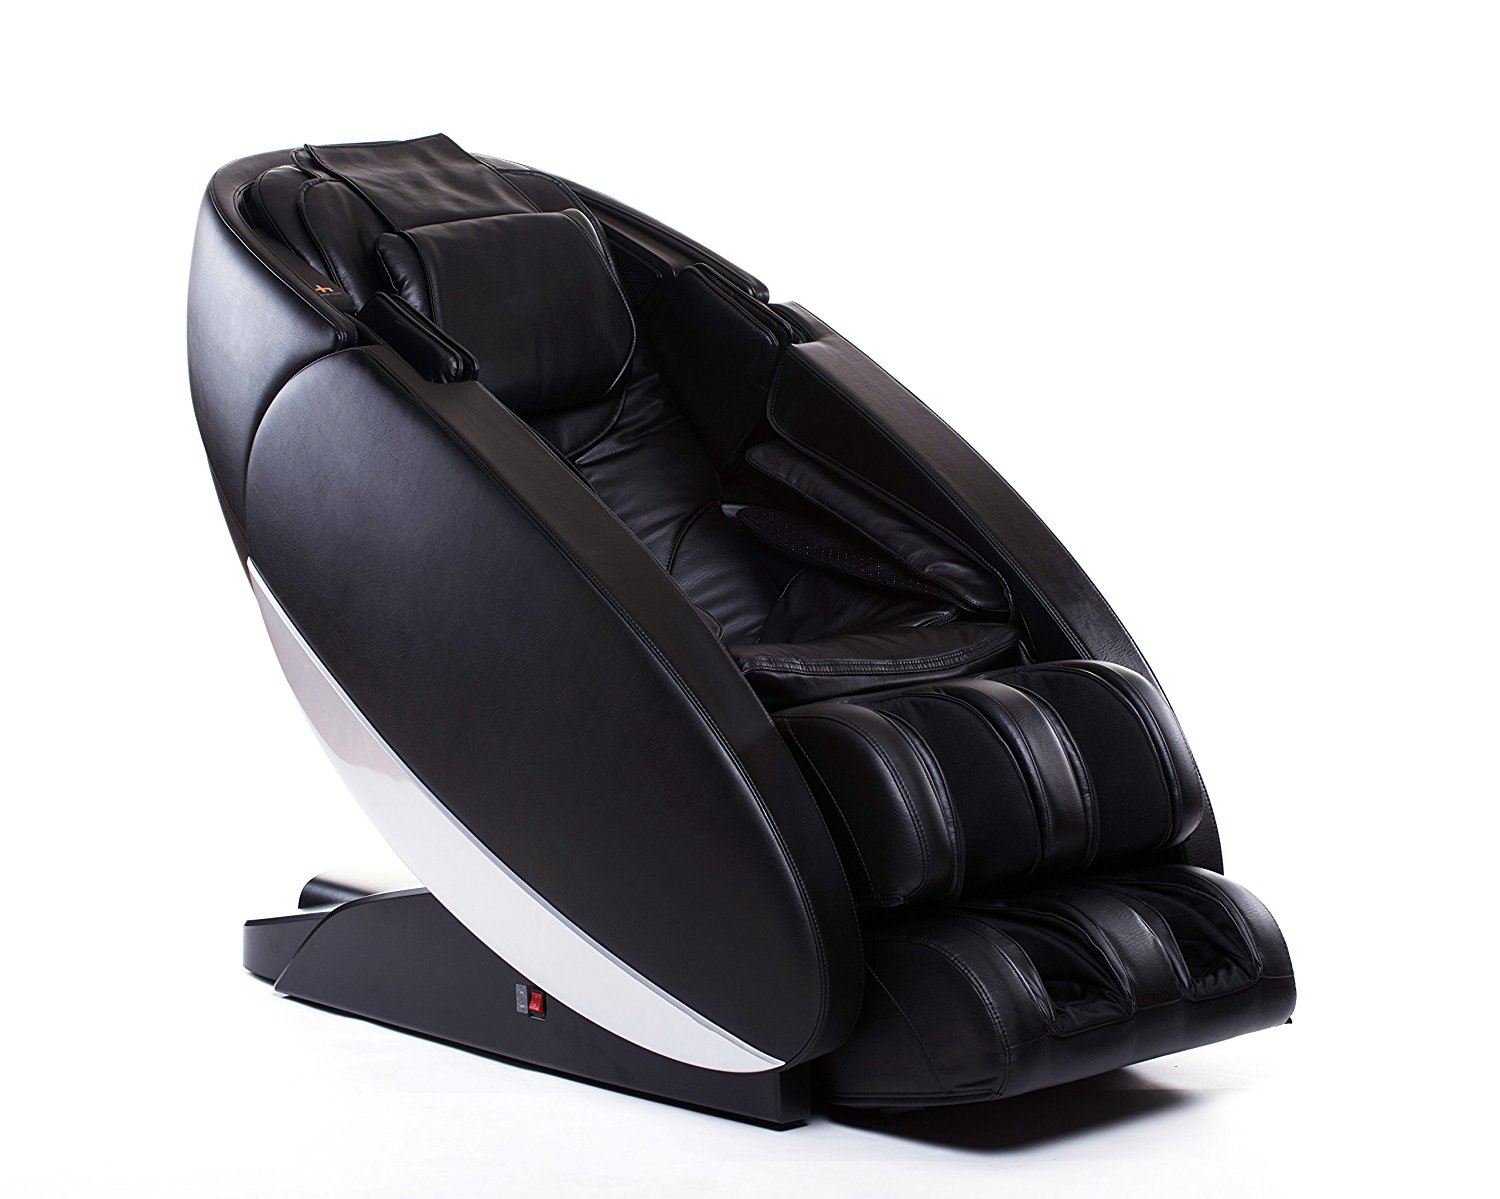 Korean Massage Chair Black 100 Novoxt 001 Novo Xt Zero Gravity Massage Chair